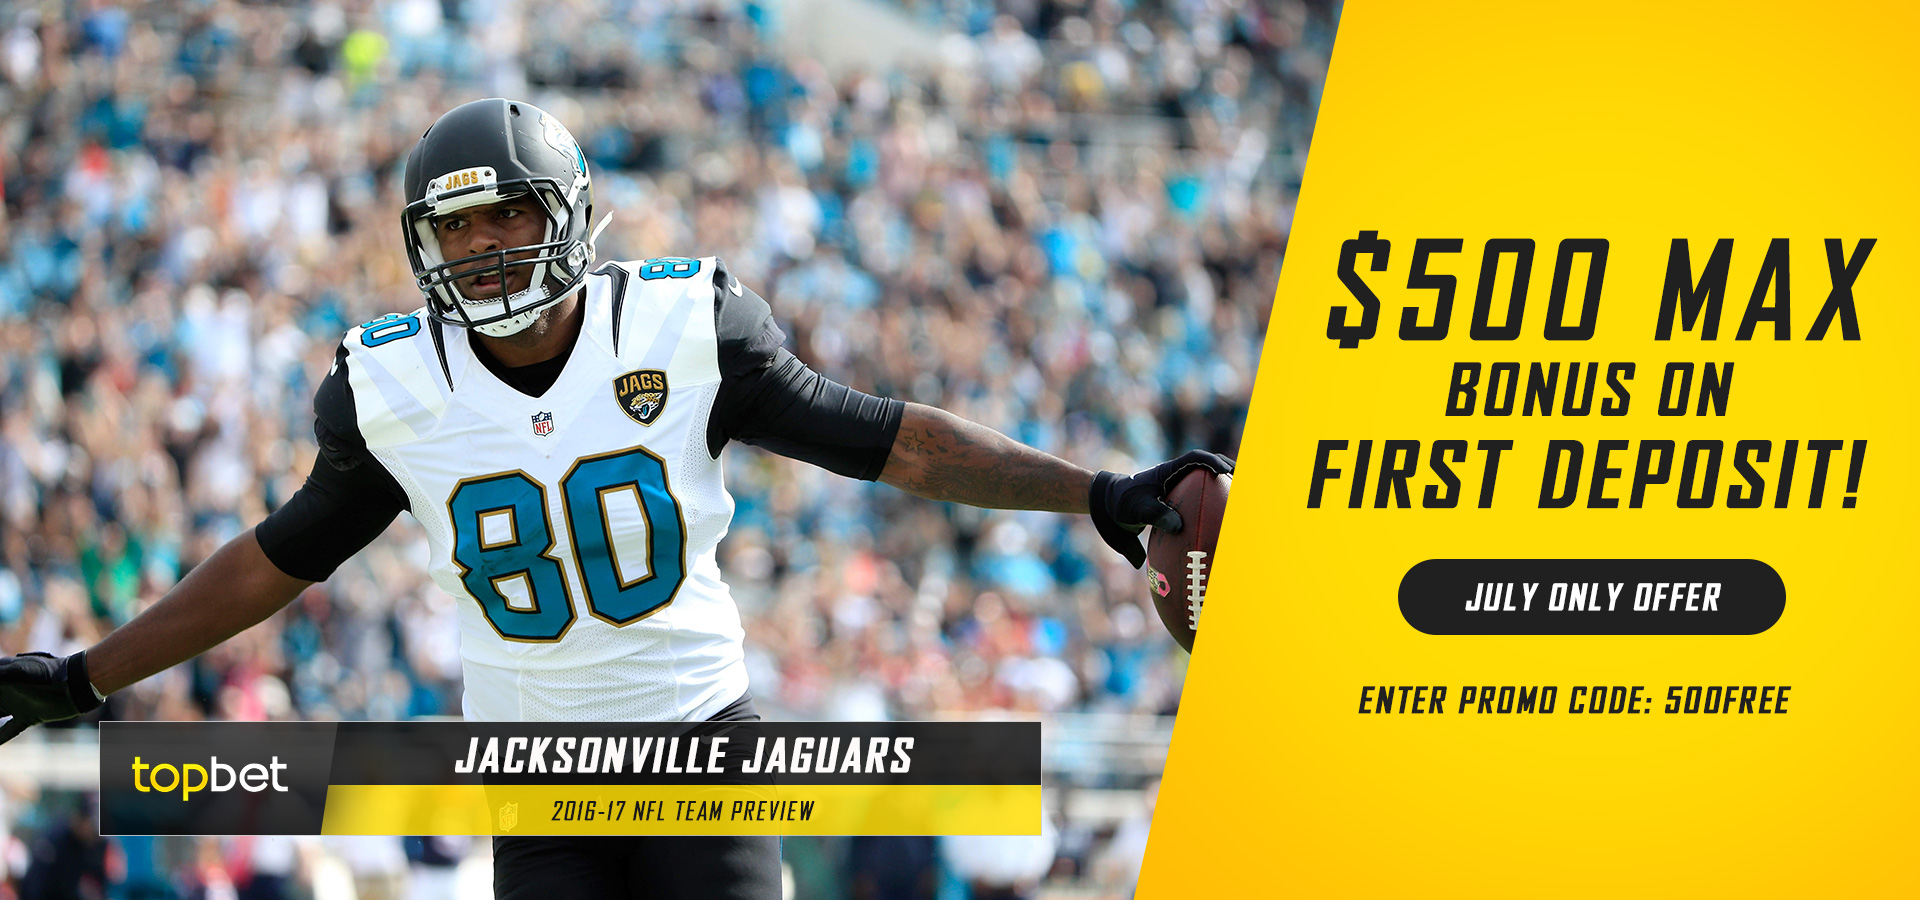 jacksonville jaguars 2016 17 team preview odds. Cars Review. Best American Auto & Cars Review